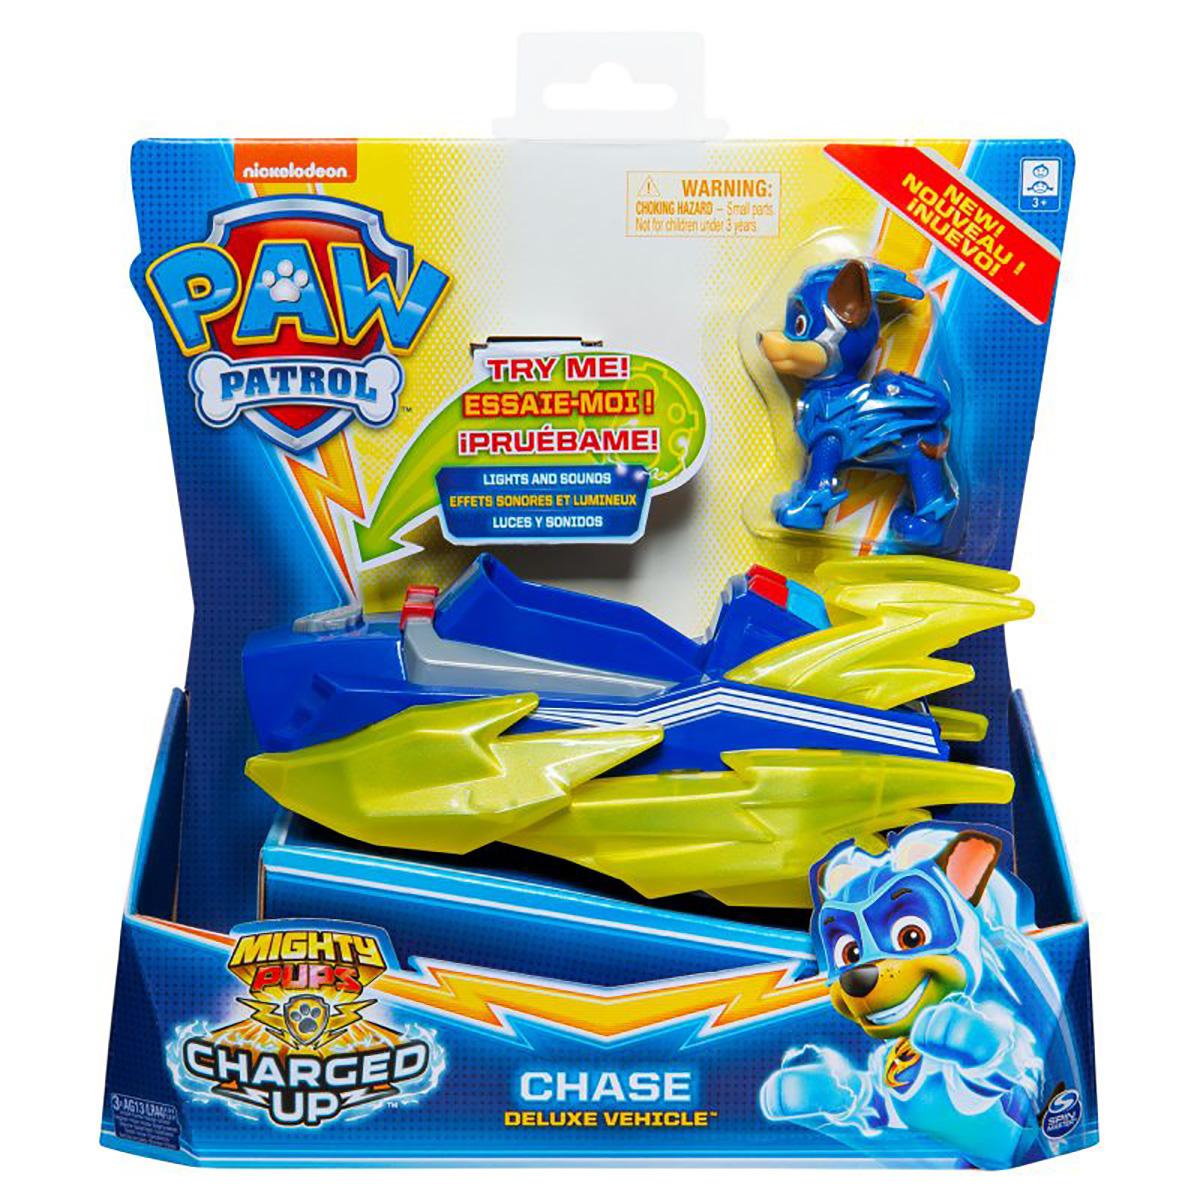 Figurina cu vehicul Paw Patrol Deluxe Vehicle Mighty Pups, Chase 20121272